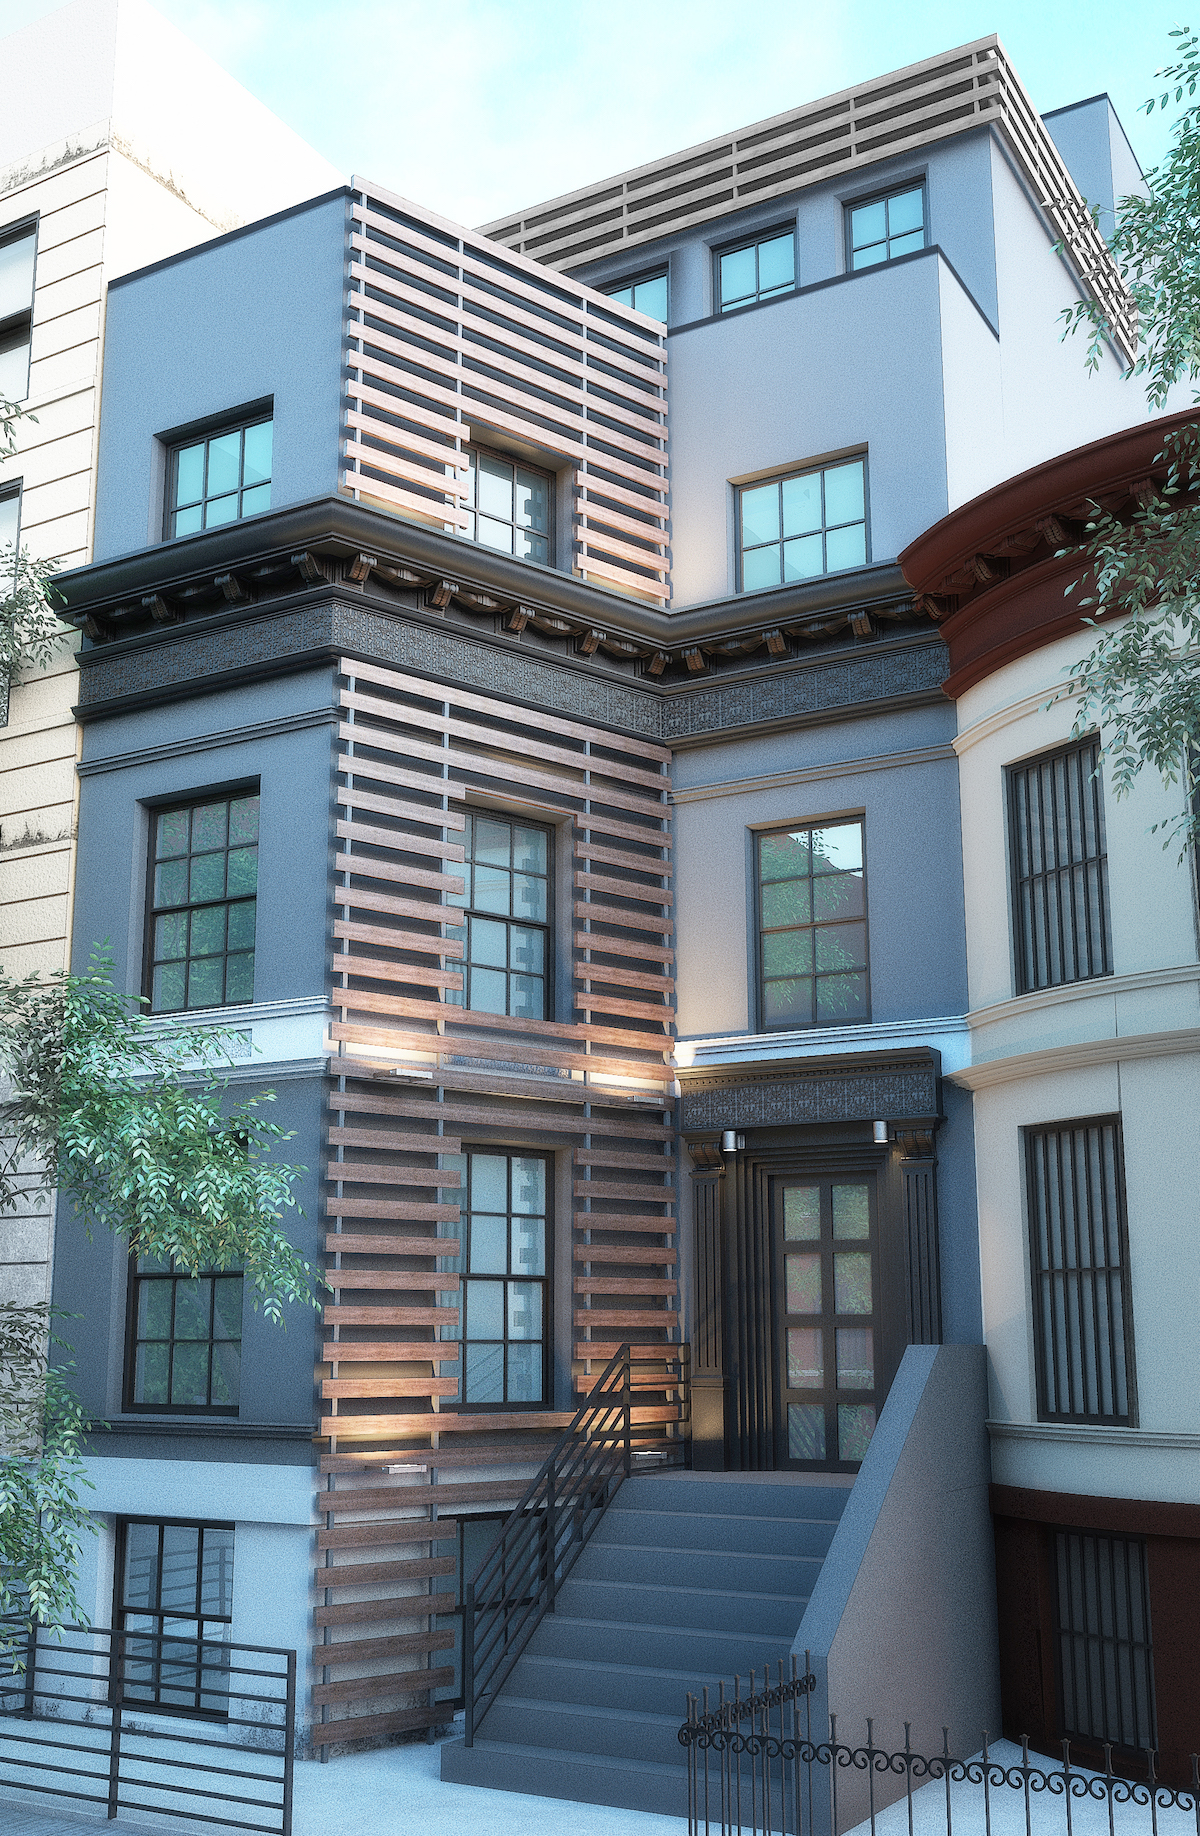 860 Macon Street. rendering by J Goldman Design